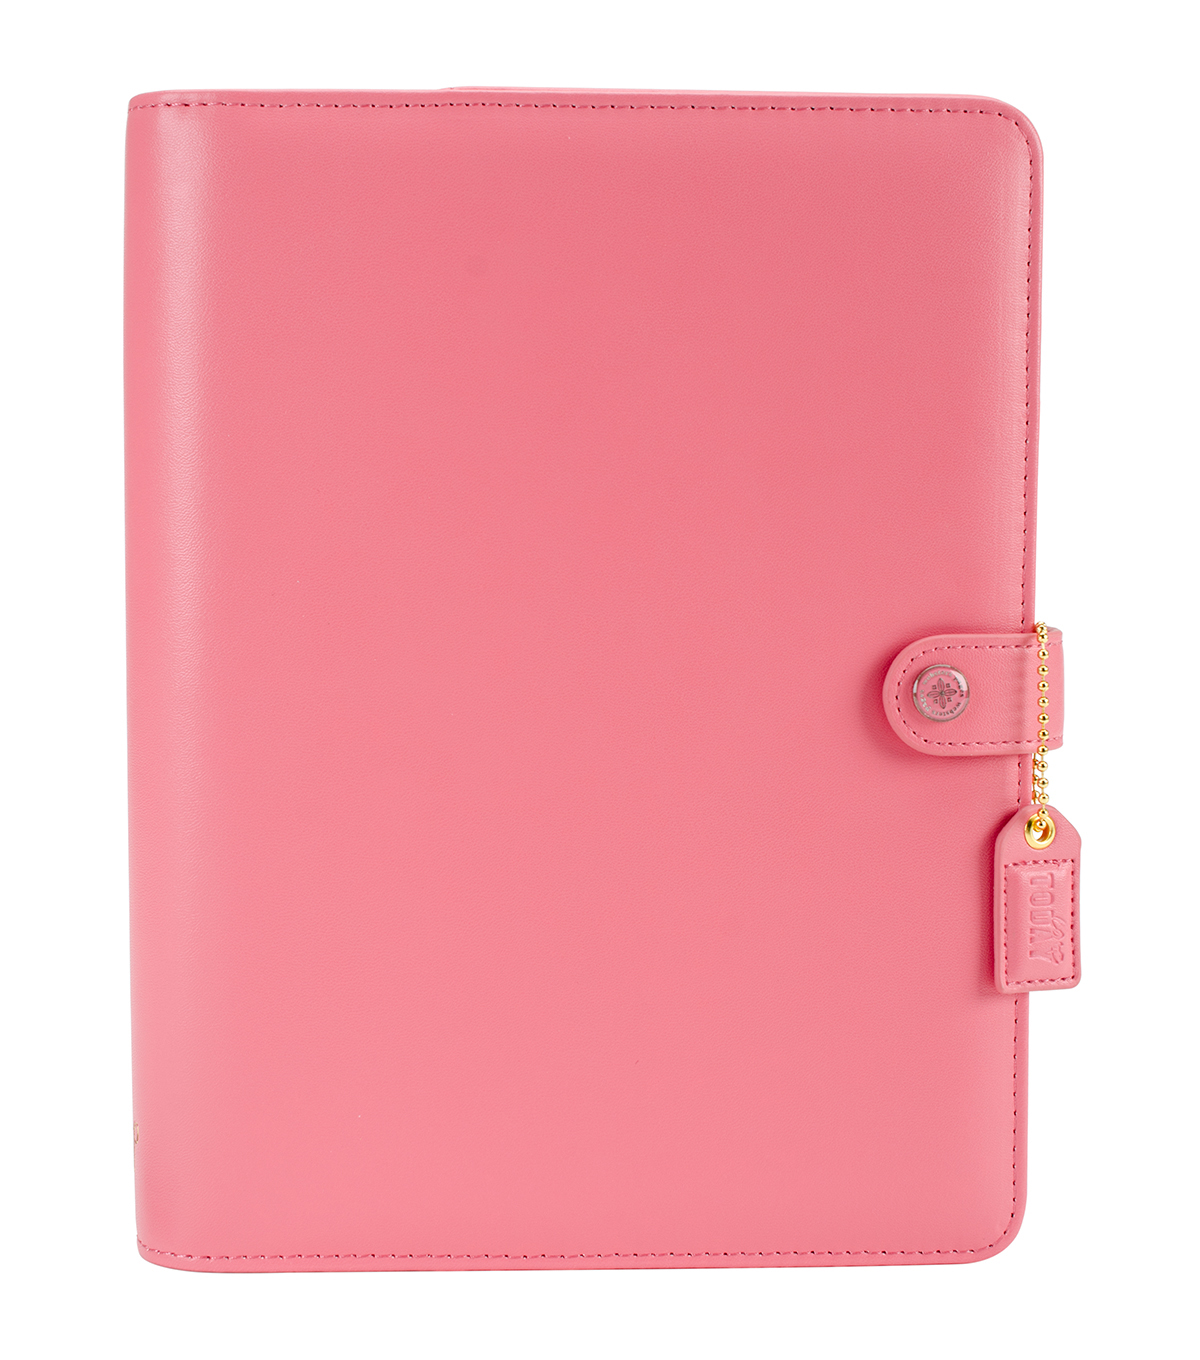 Webster\u0027s Pages Color Crush A5 Faux Leather Planner Kit-Light Pink